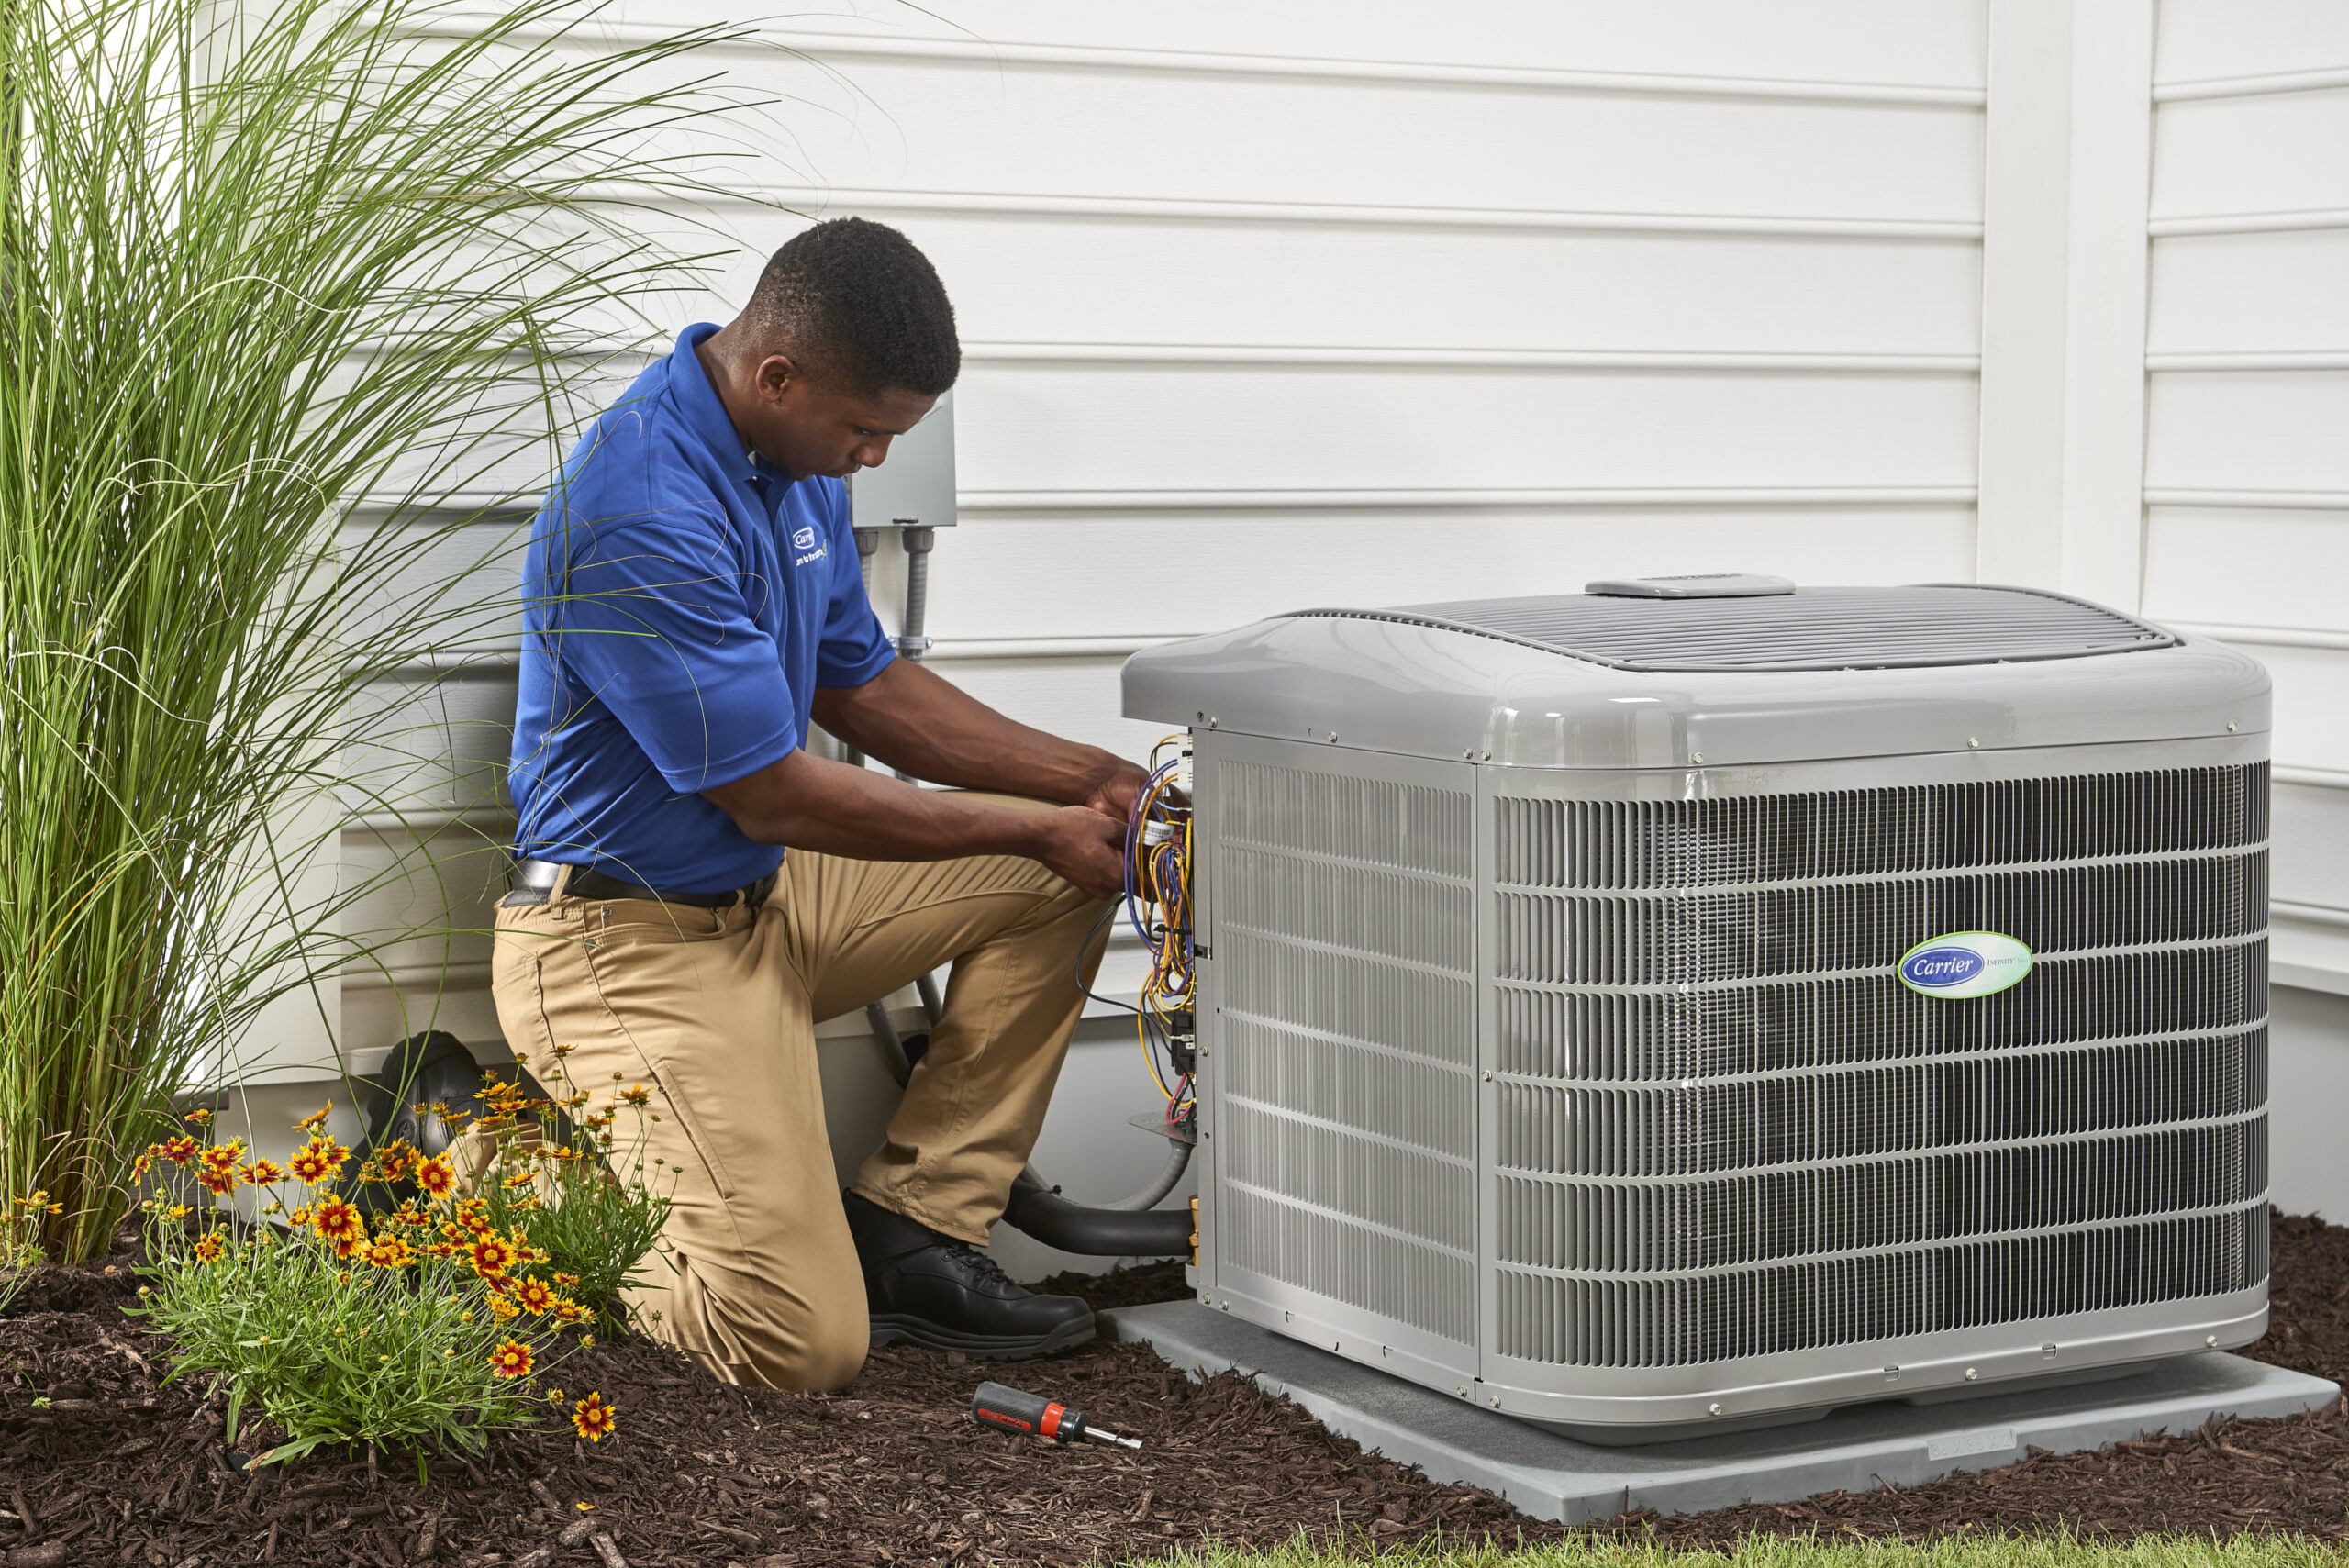 We provide customers with Complete Cooling Services; Installation of Central Air Conditioning, Ductless AC and Condenser Unit replacement